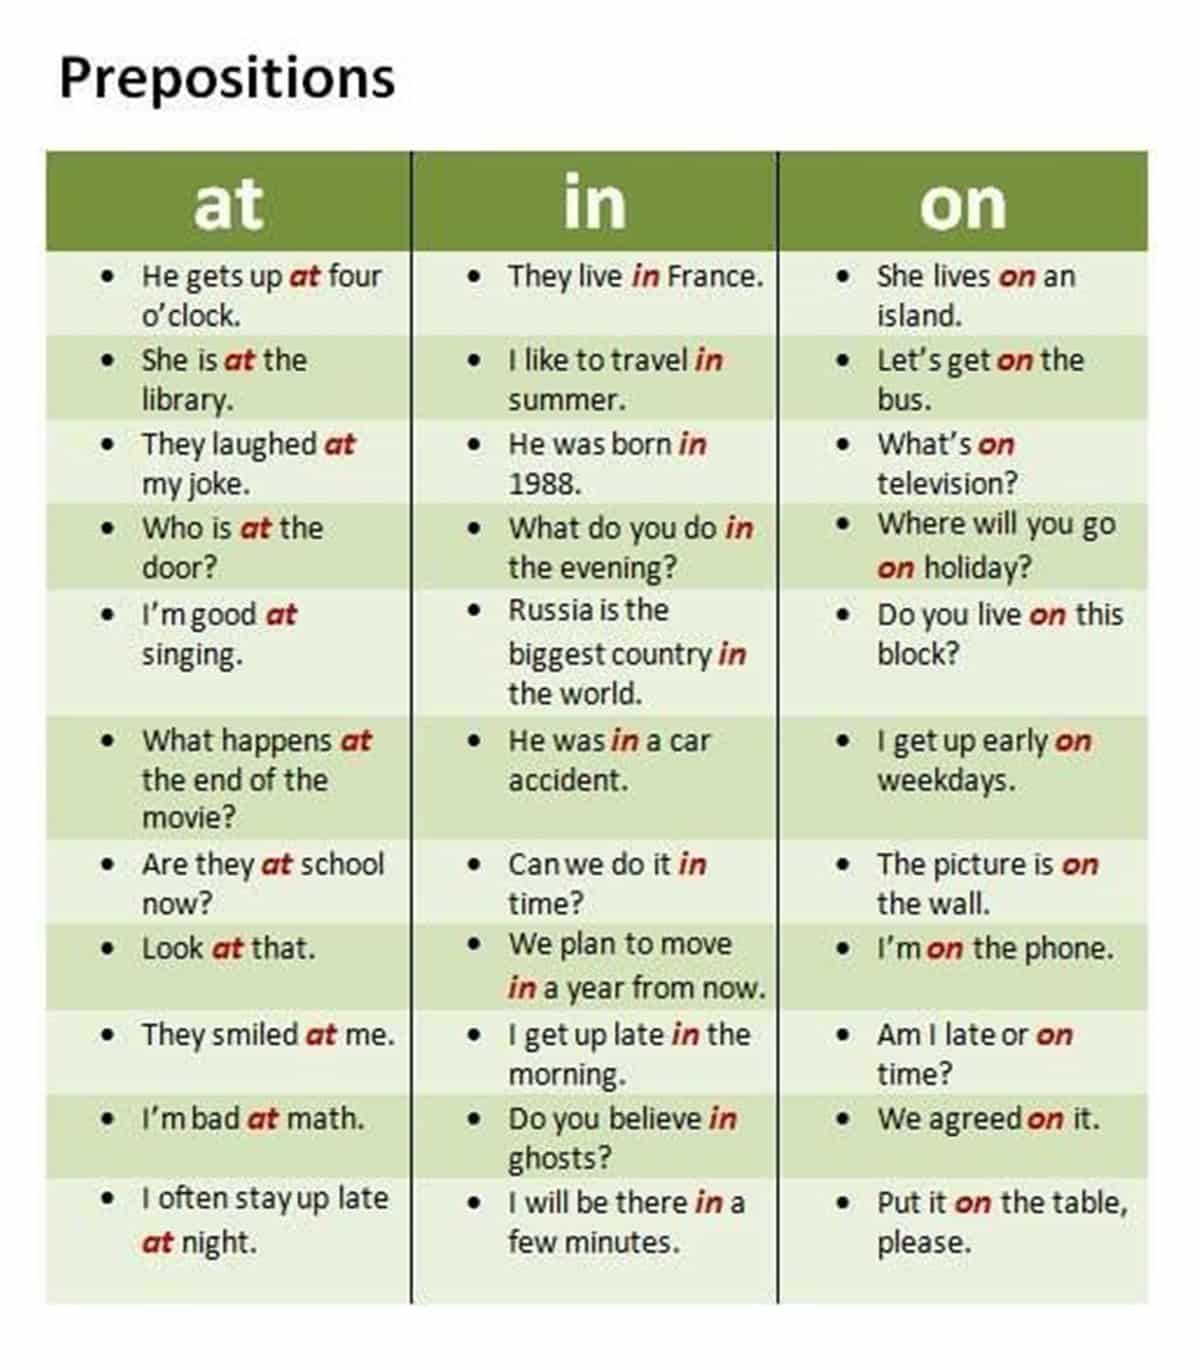 Prepositions of Time and Place - AT/ IN/ ON